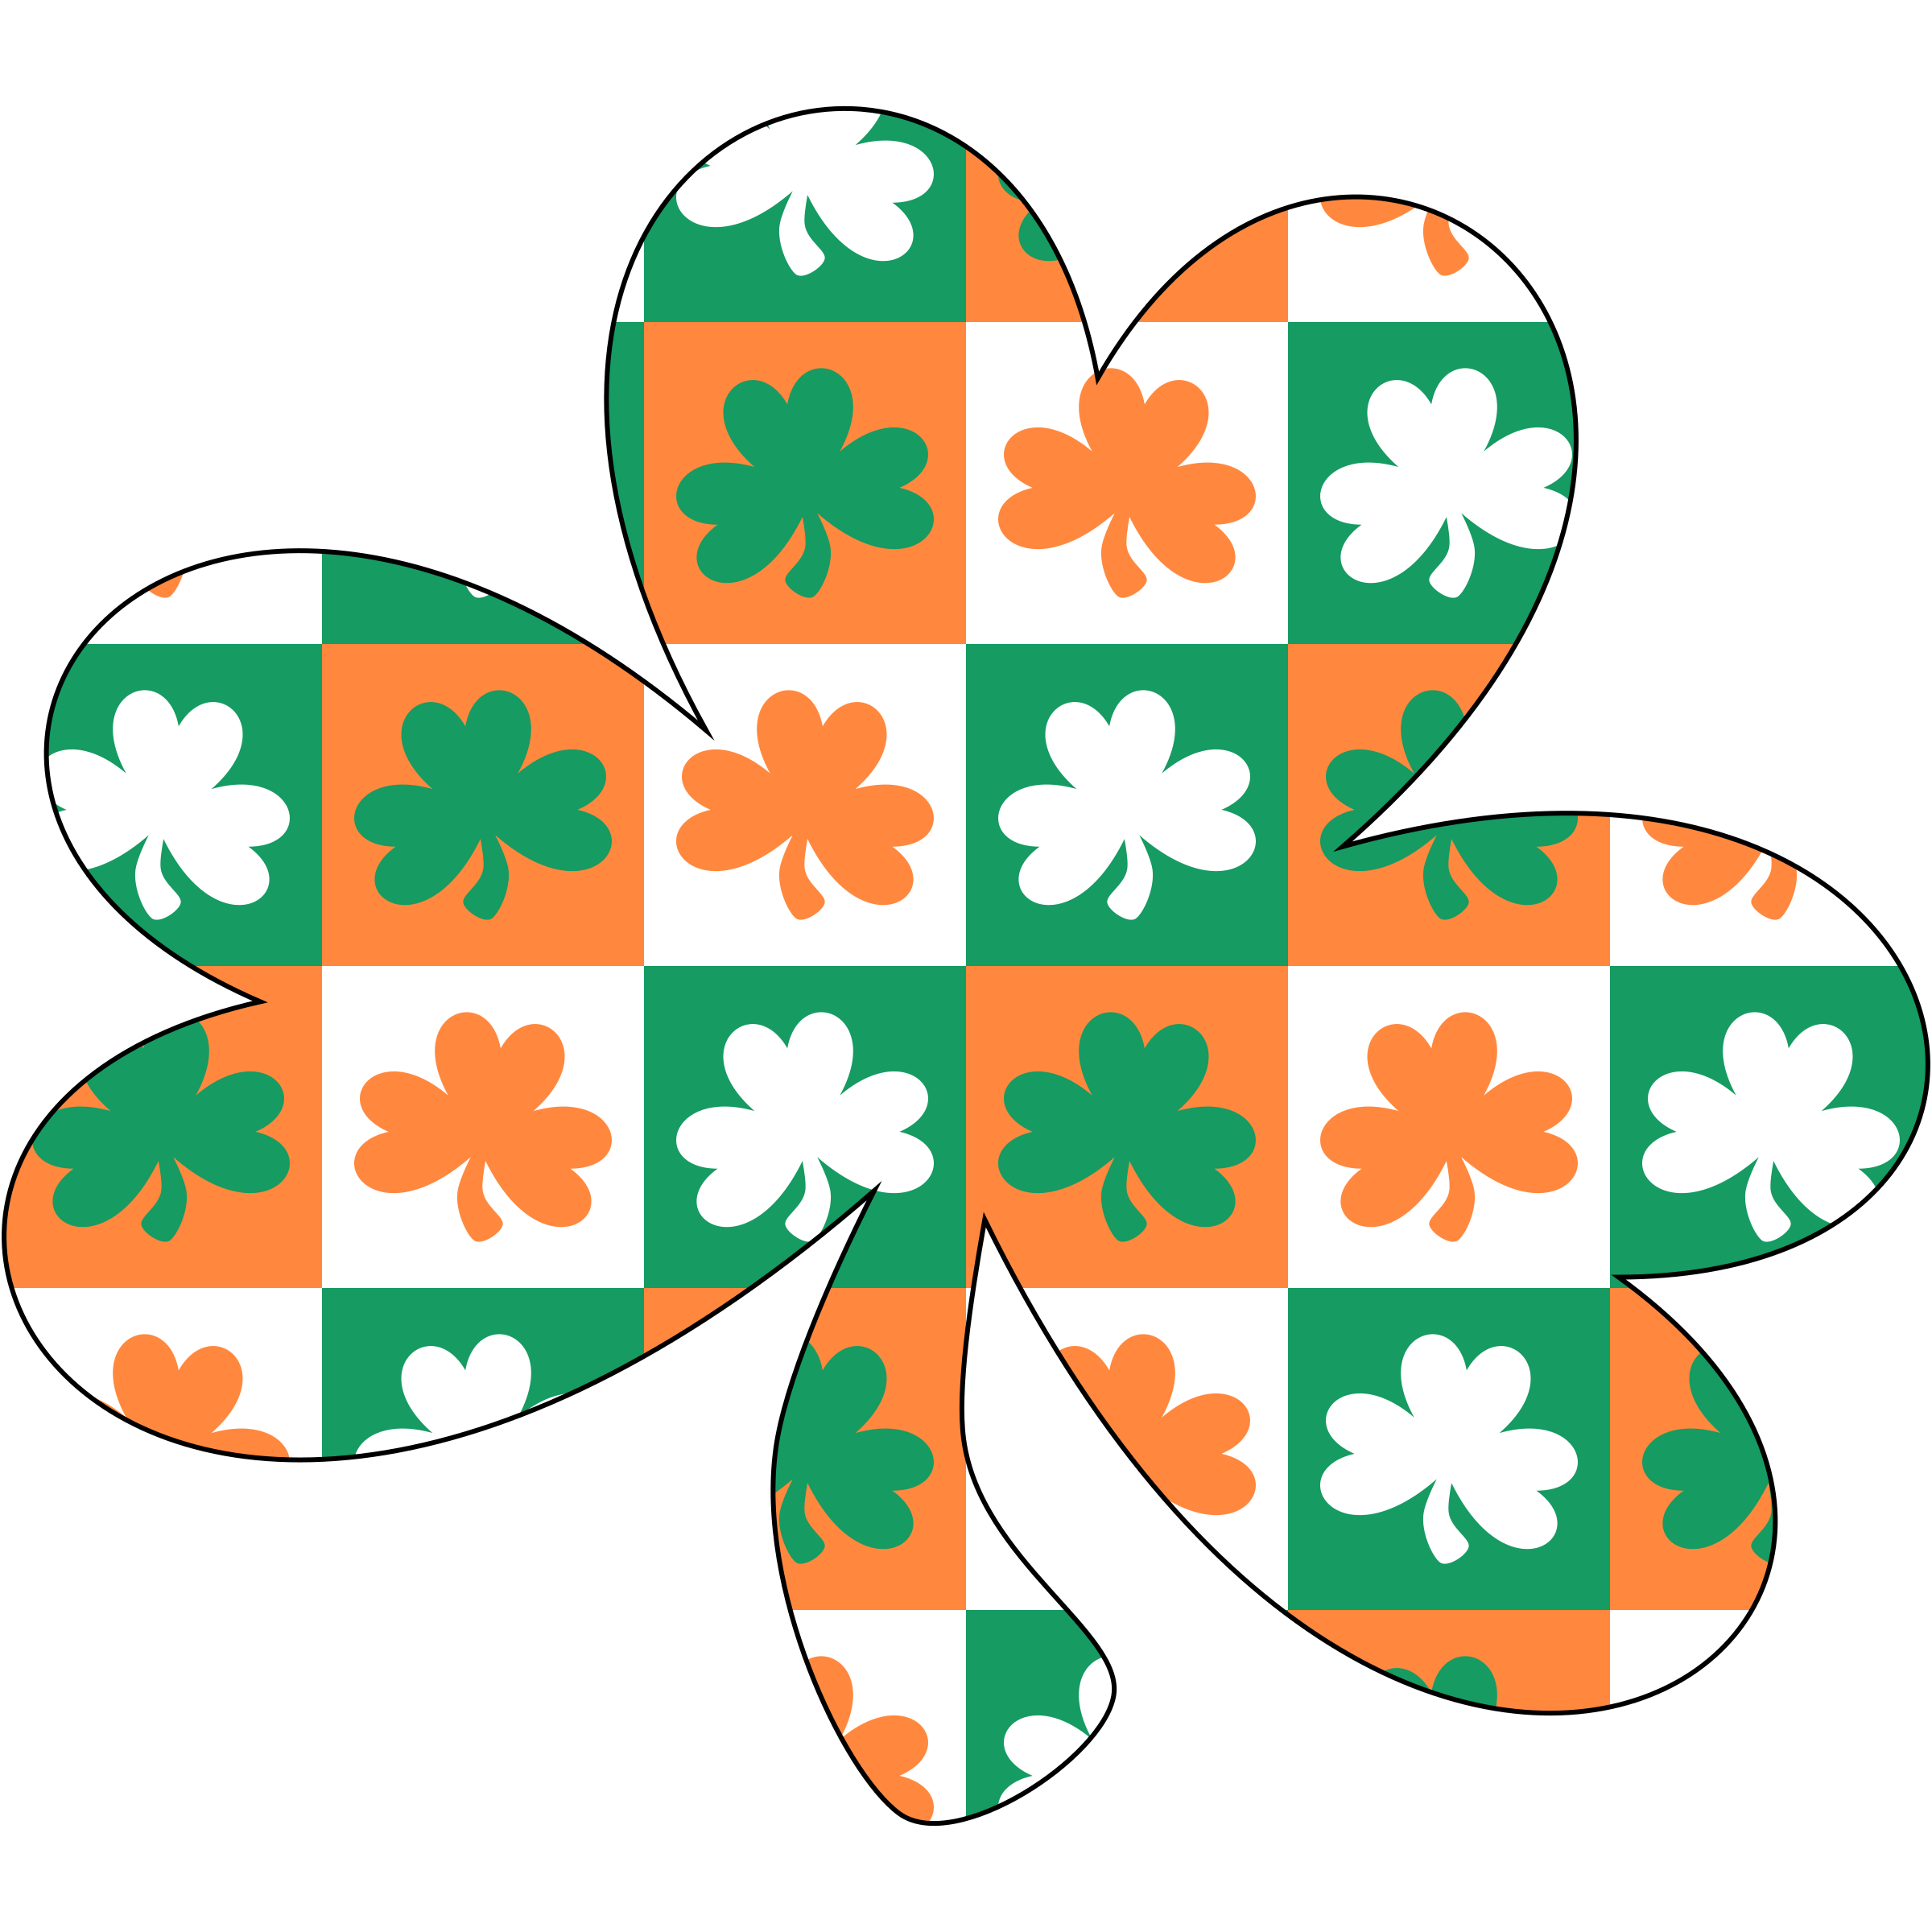 Shamrock with Ireland pattern by Firkin